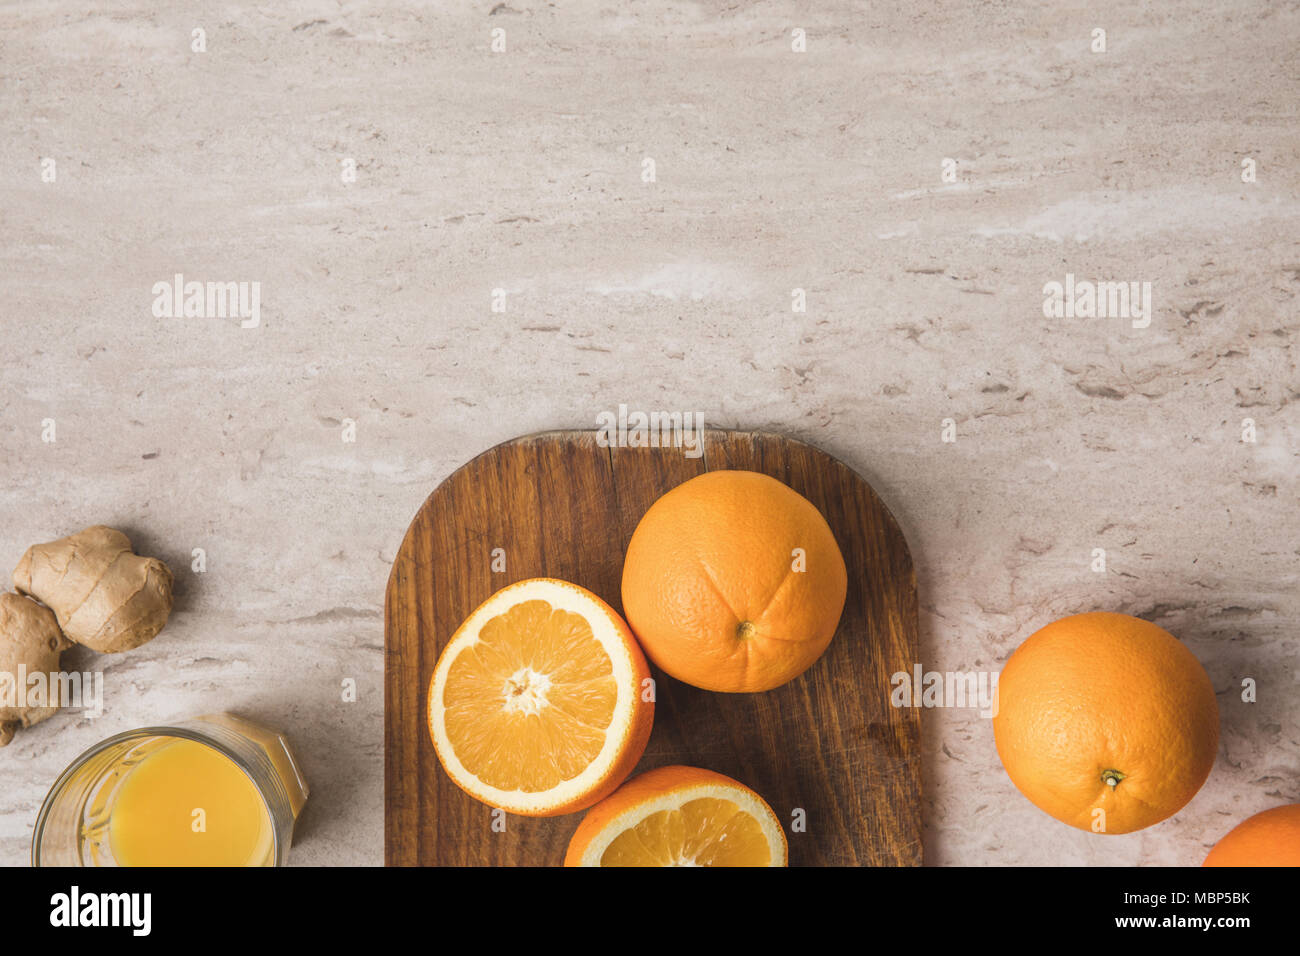 top view of oranges on cutting board on marble tabletop - Stock Image